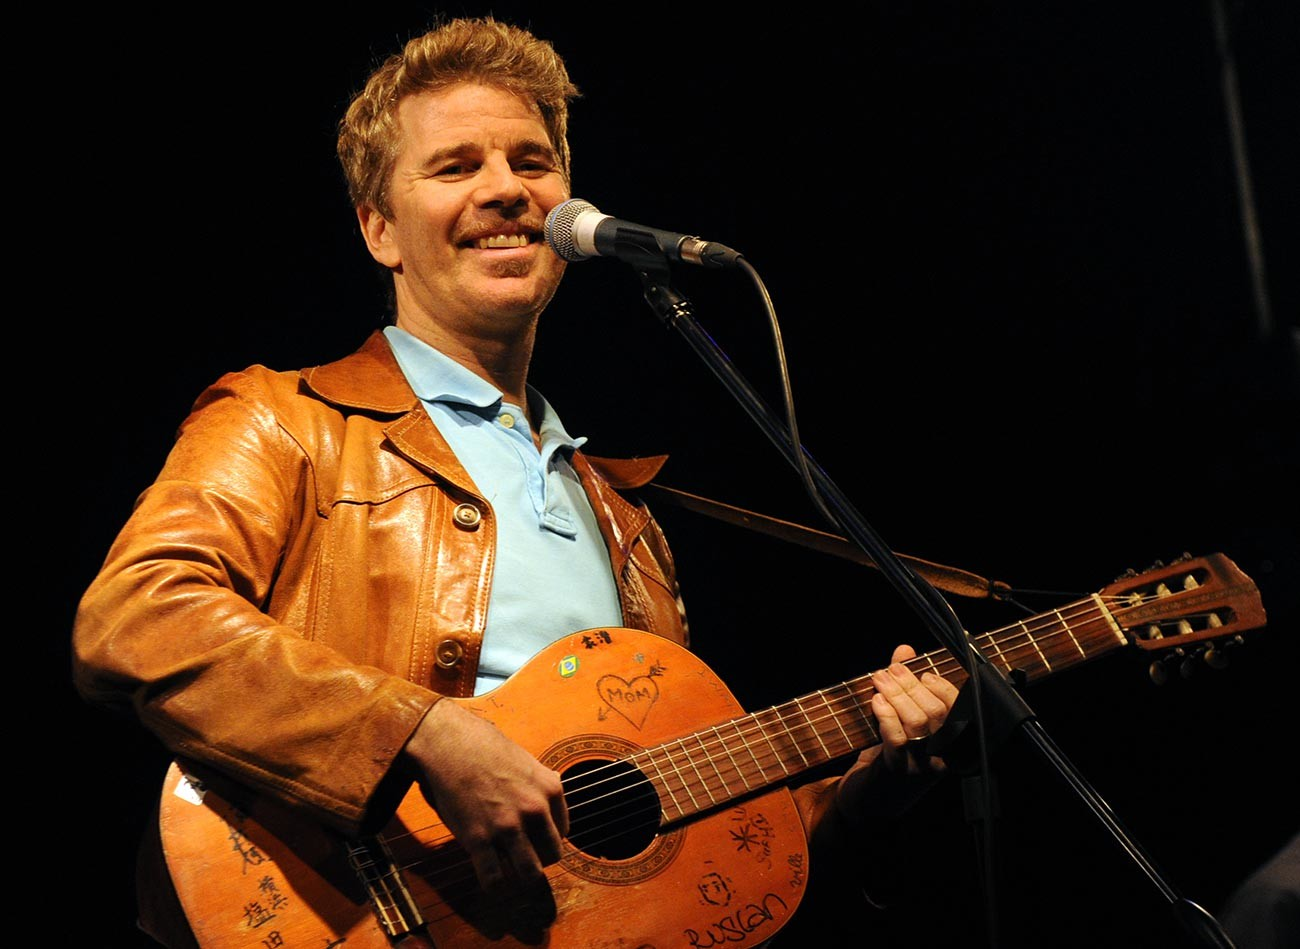 David Brown during a concert in Moscow